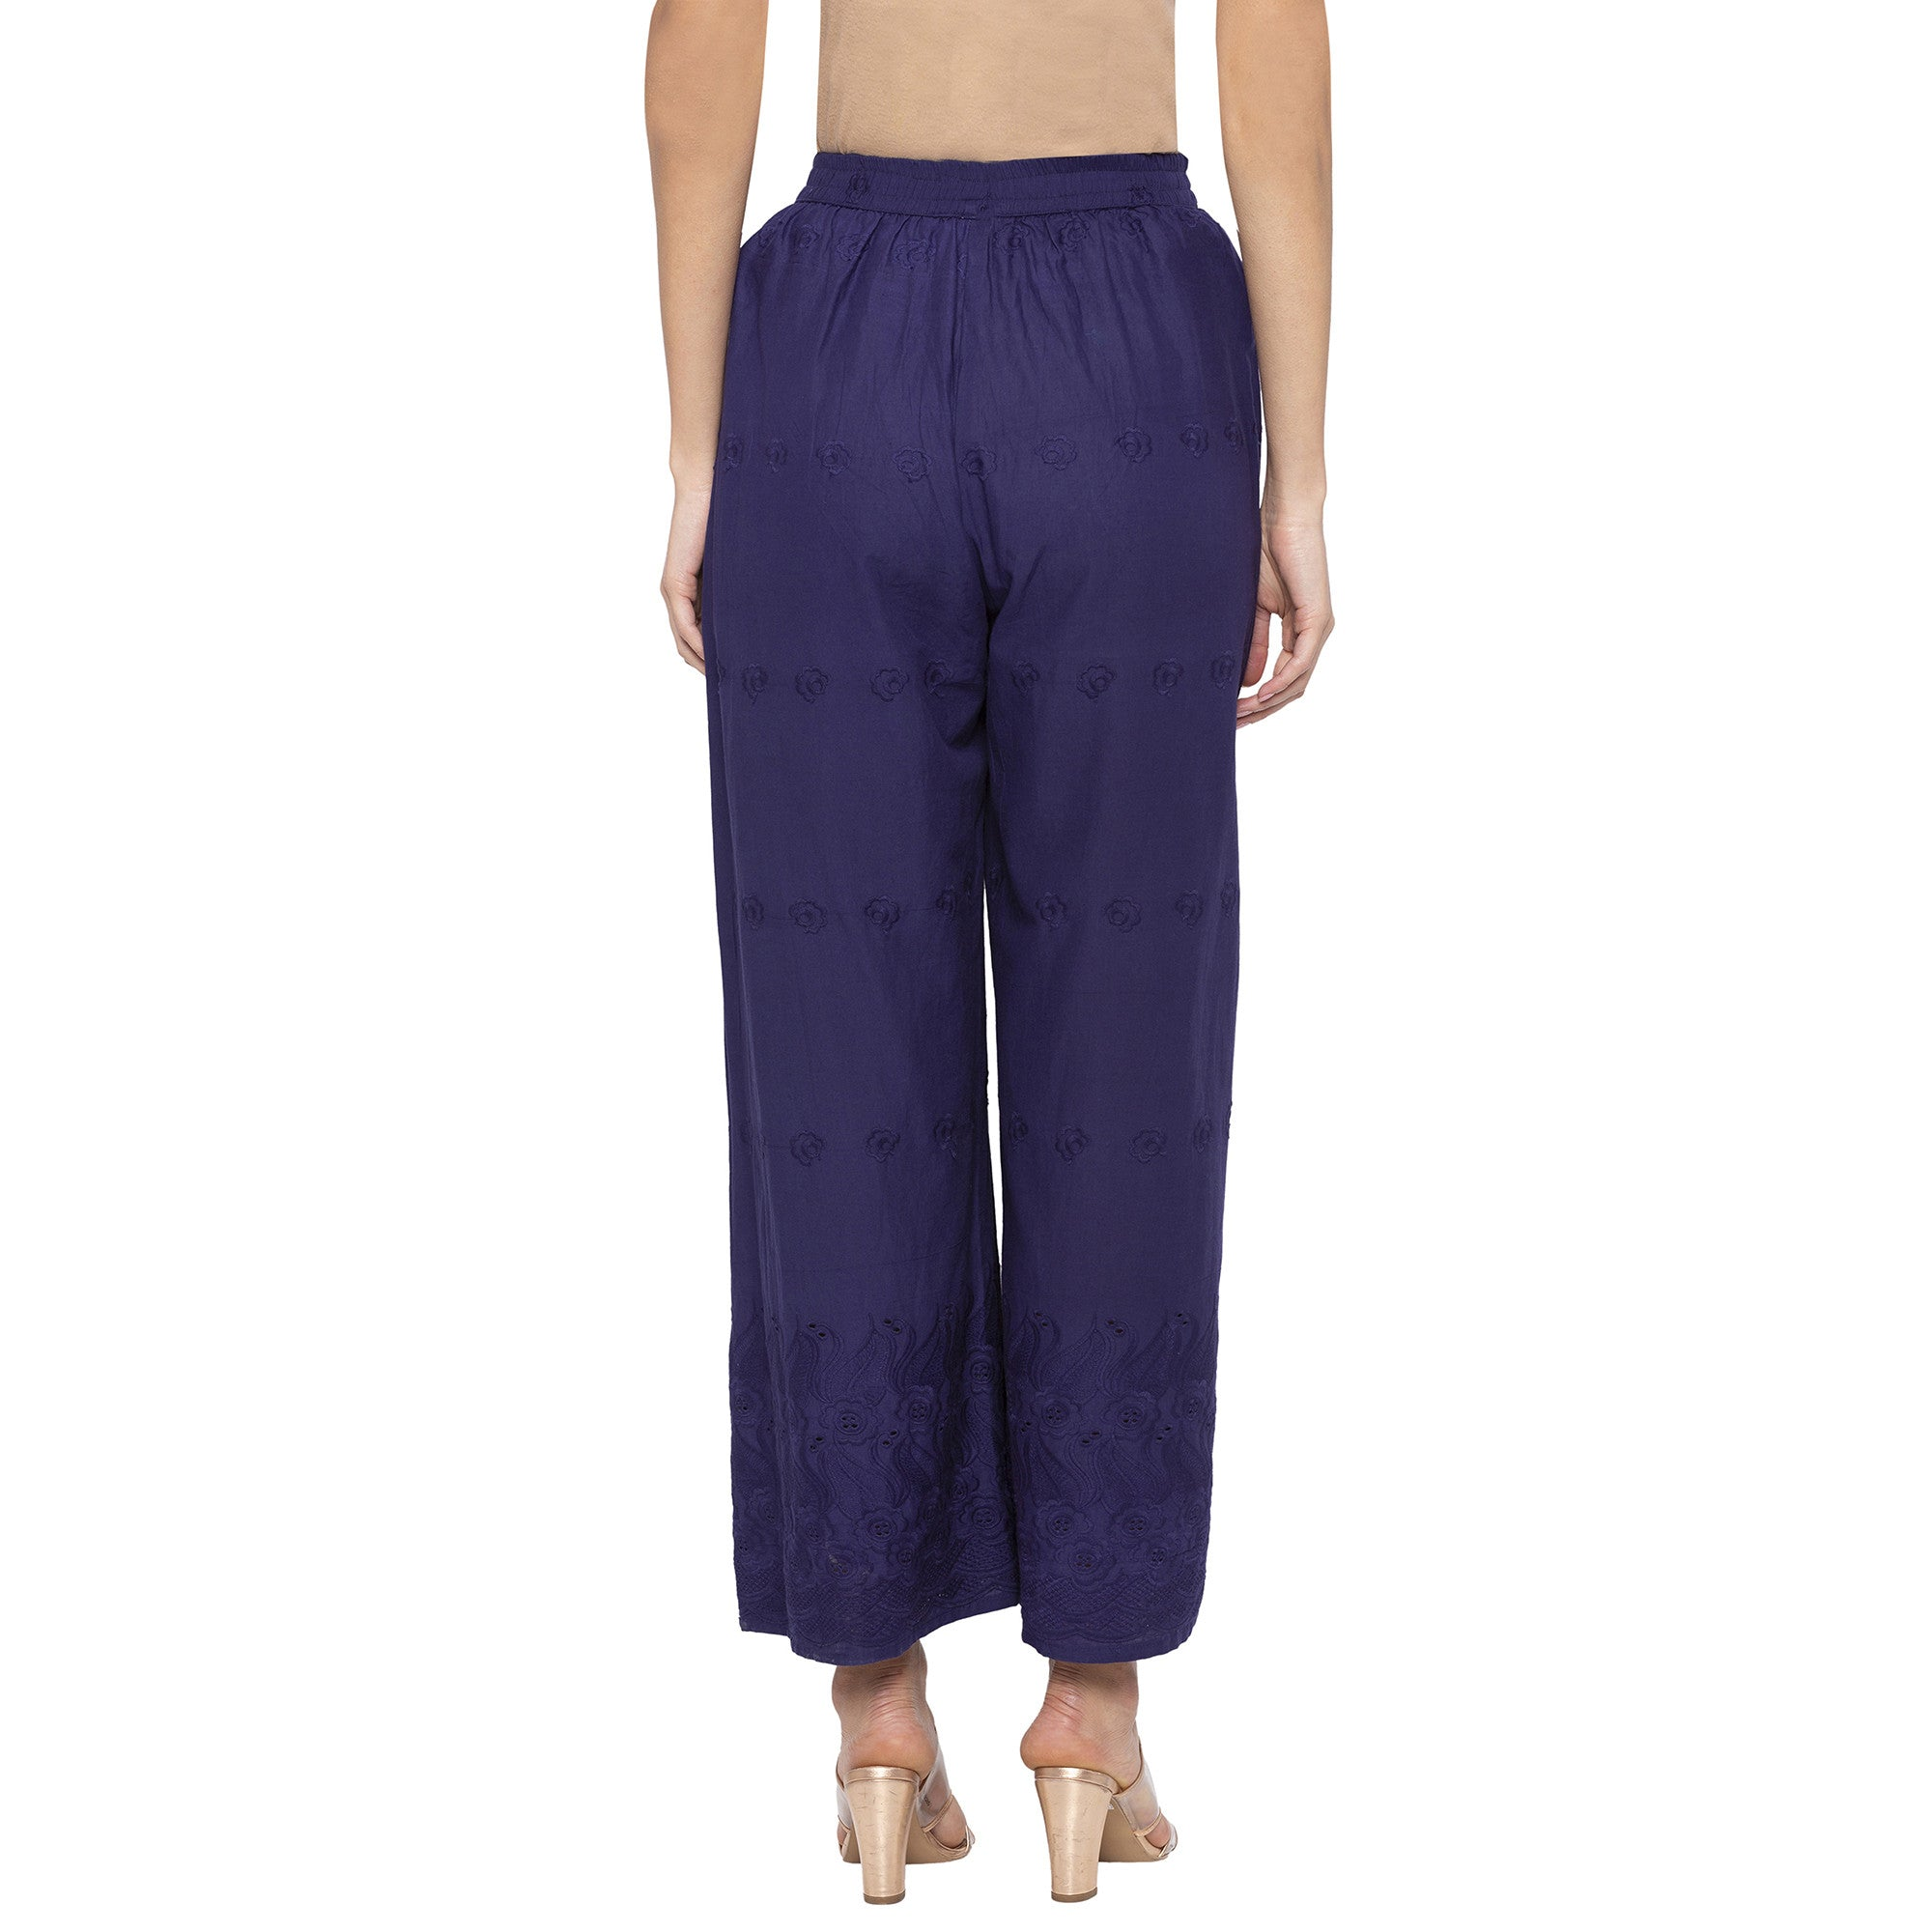 Casual Navy Blue Color Loose Fit Regular Parallel Trousers-3